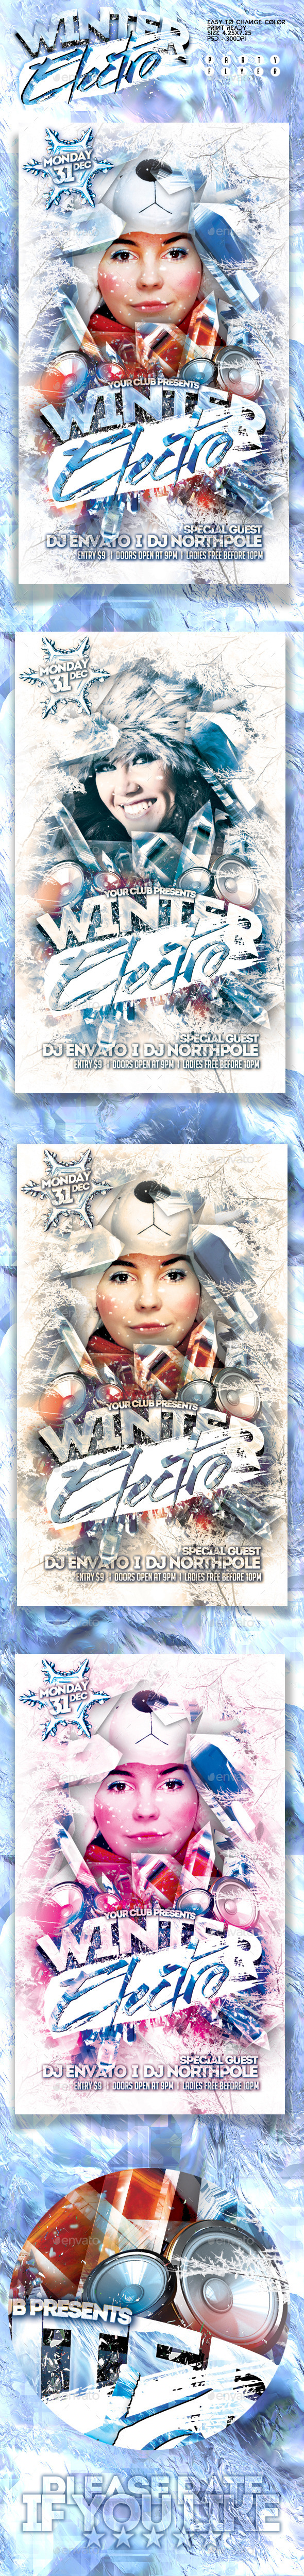 Winter Electro Party Flyer - Holidays Events